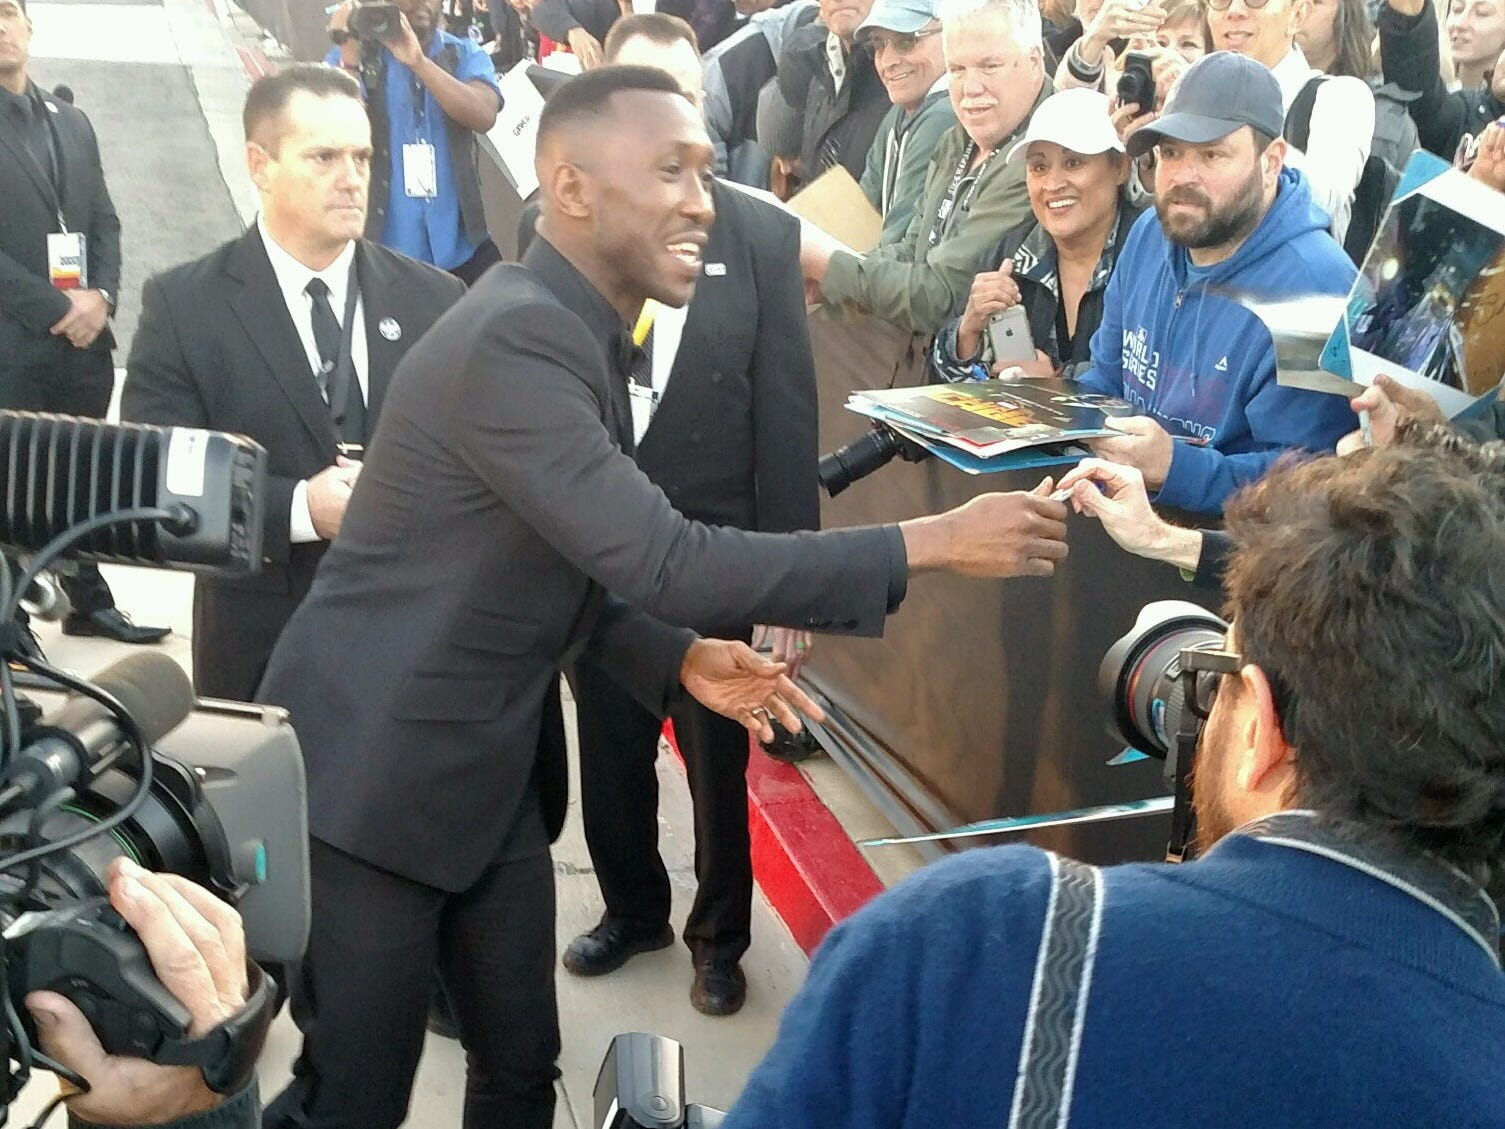 """""""Green Book"""" star Mahershala Ali is greet by autograph seekers Thursday outside the Palm Springs Convention Center. The cast and director of Green Book are receiving the Palm Springs International Film Festival  Vanguard Award at the Film Awards Gala."""